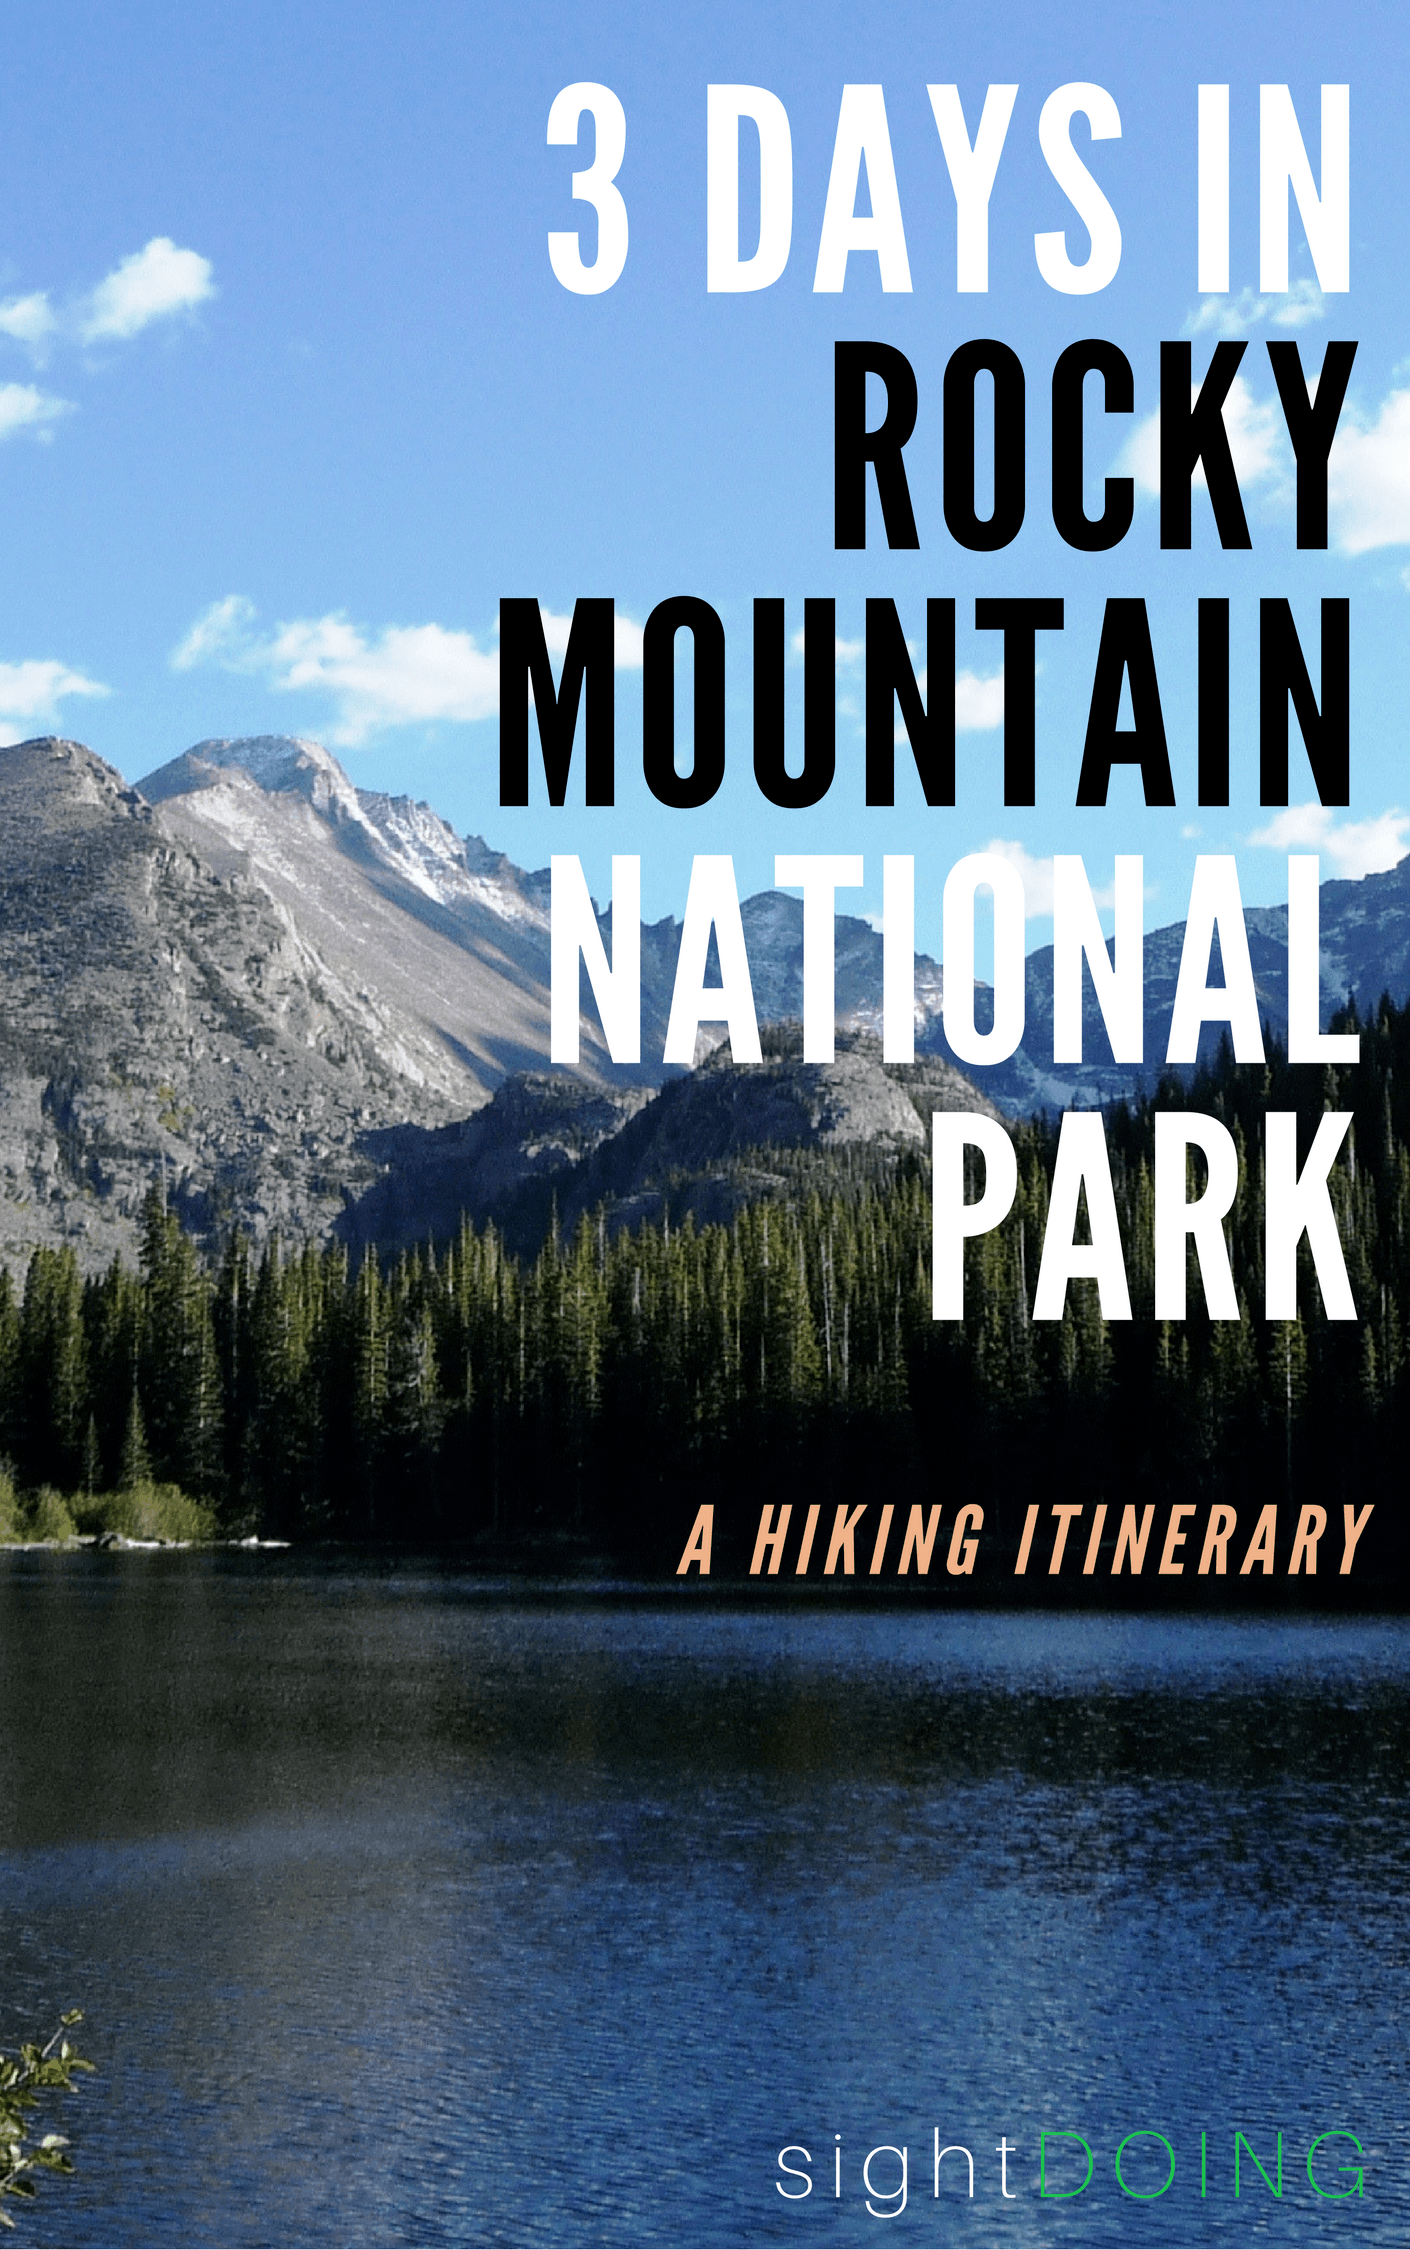 Go hike in Colorado! Rocky Mountain National Park (outside Denver near Estes Park) has great hiking. This 3-day itinerary will help you plan your trip as long as you love to trek.